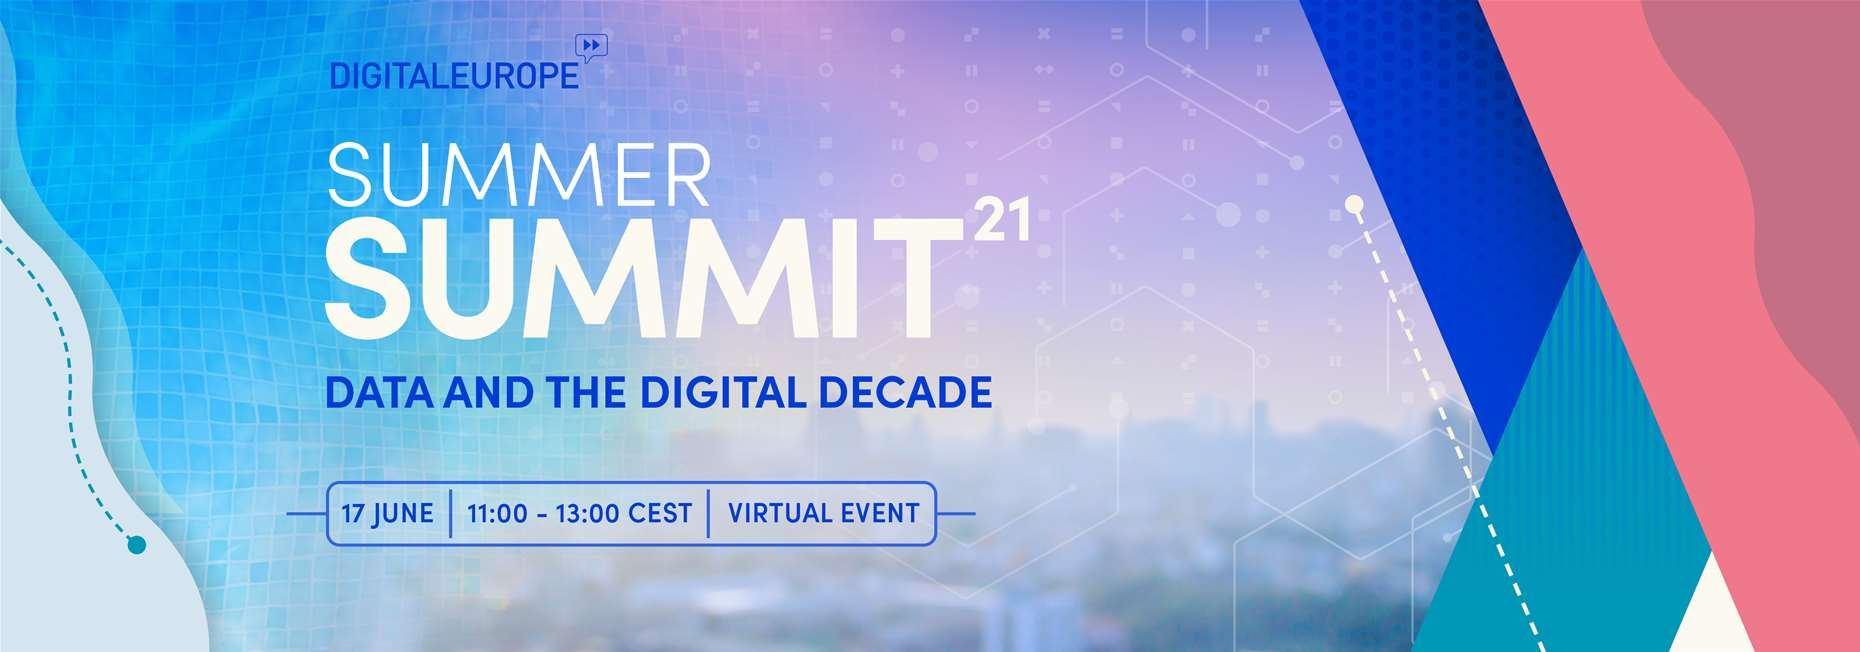 Summer Summit 2021 The Digital Decade: Europe's future prospects in a digital world - 17 June 2021